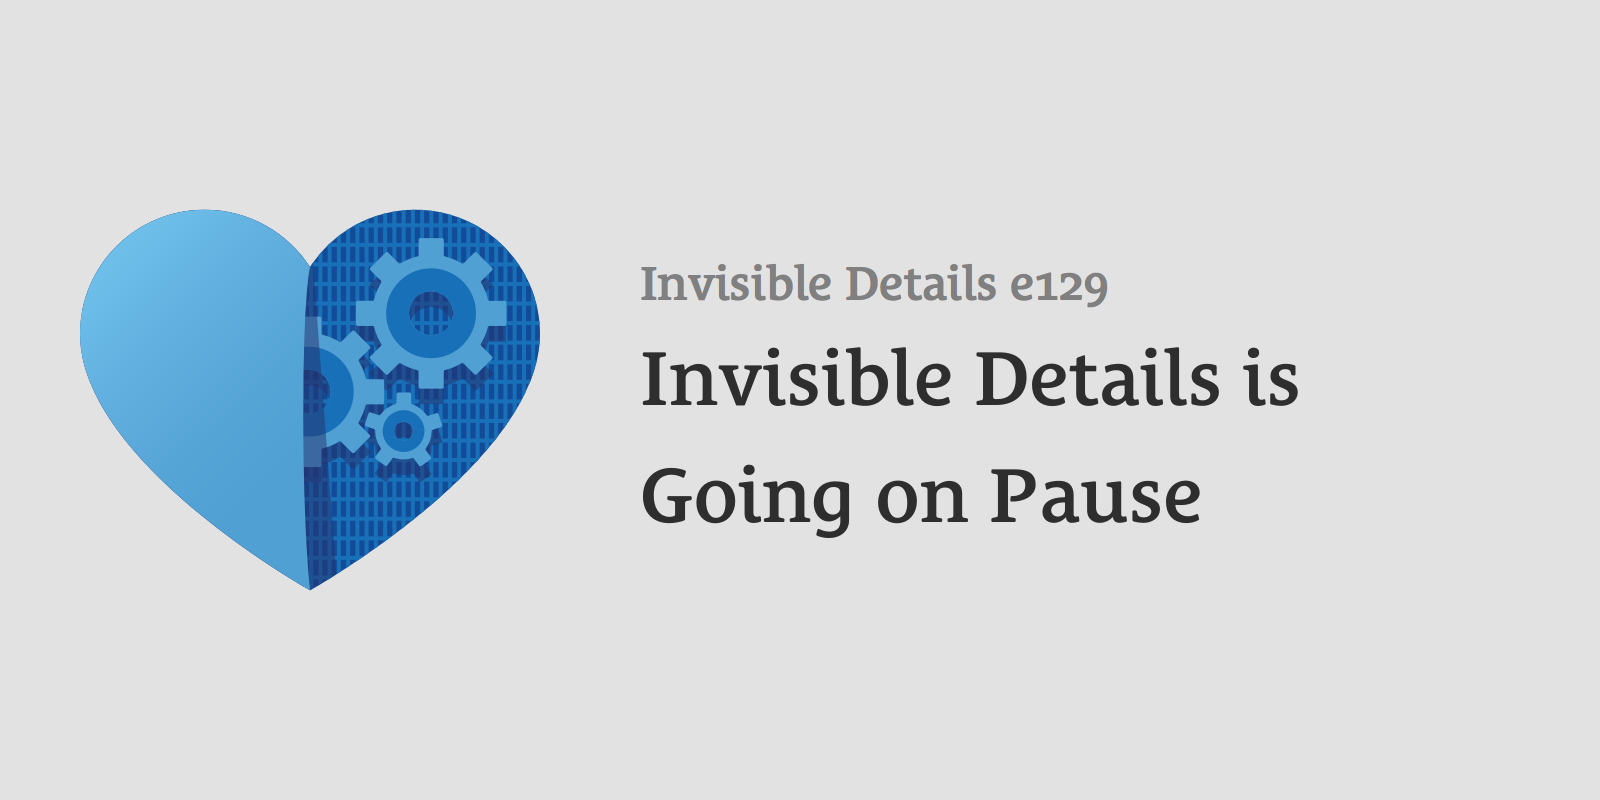 Invisible Details is Going on Pause